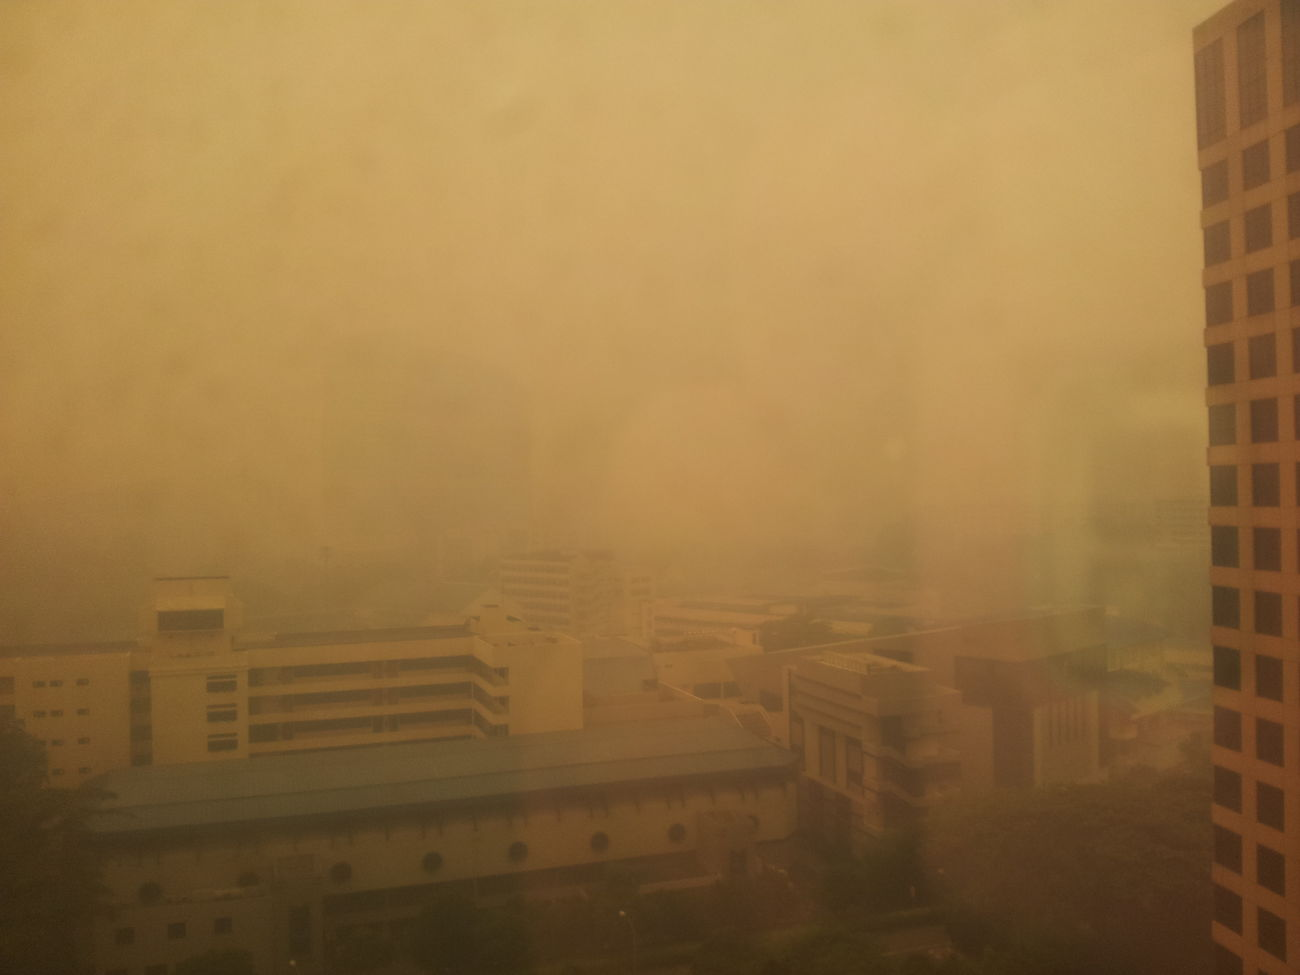 PSI read 367 at 11am. The country is in a crazed rush for N95 masks. Weather Pollution Sky_collection Unfiltered